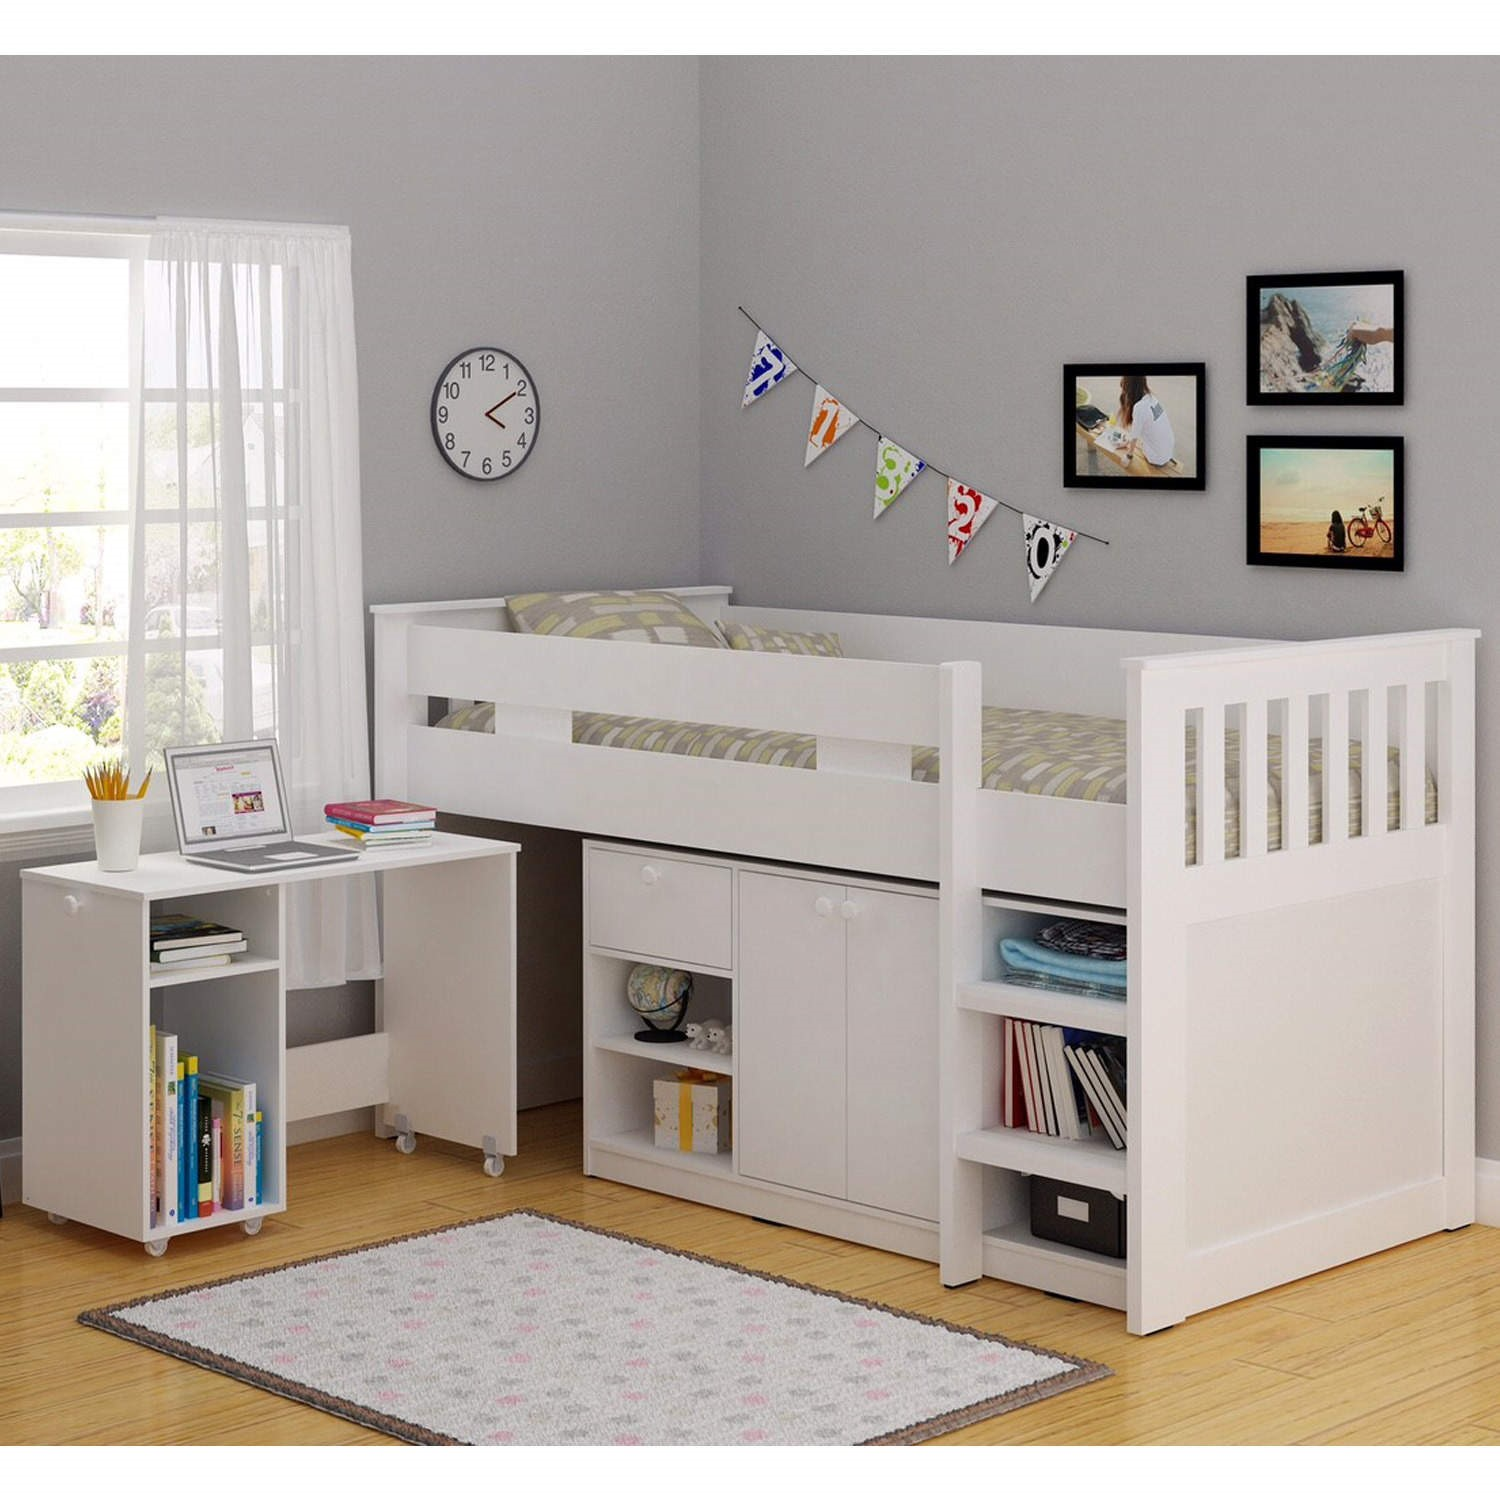 Grade A2 Seconique Merlin Study Mid Sleeper In White